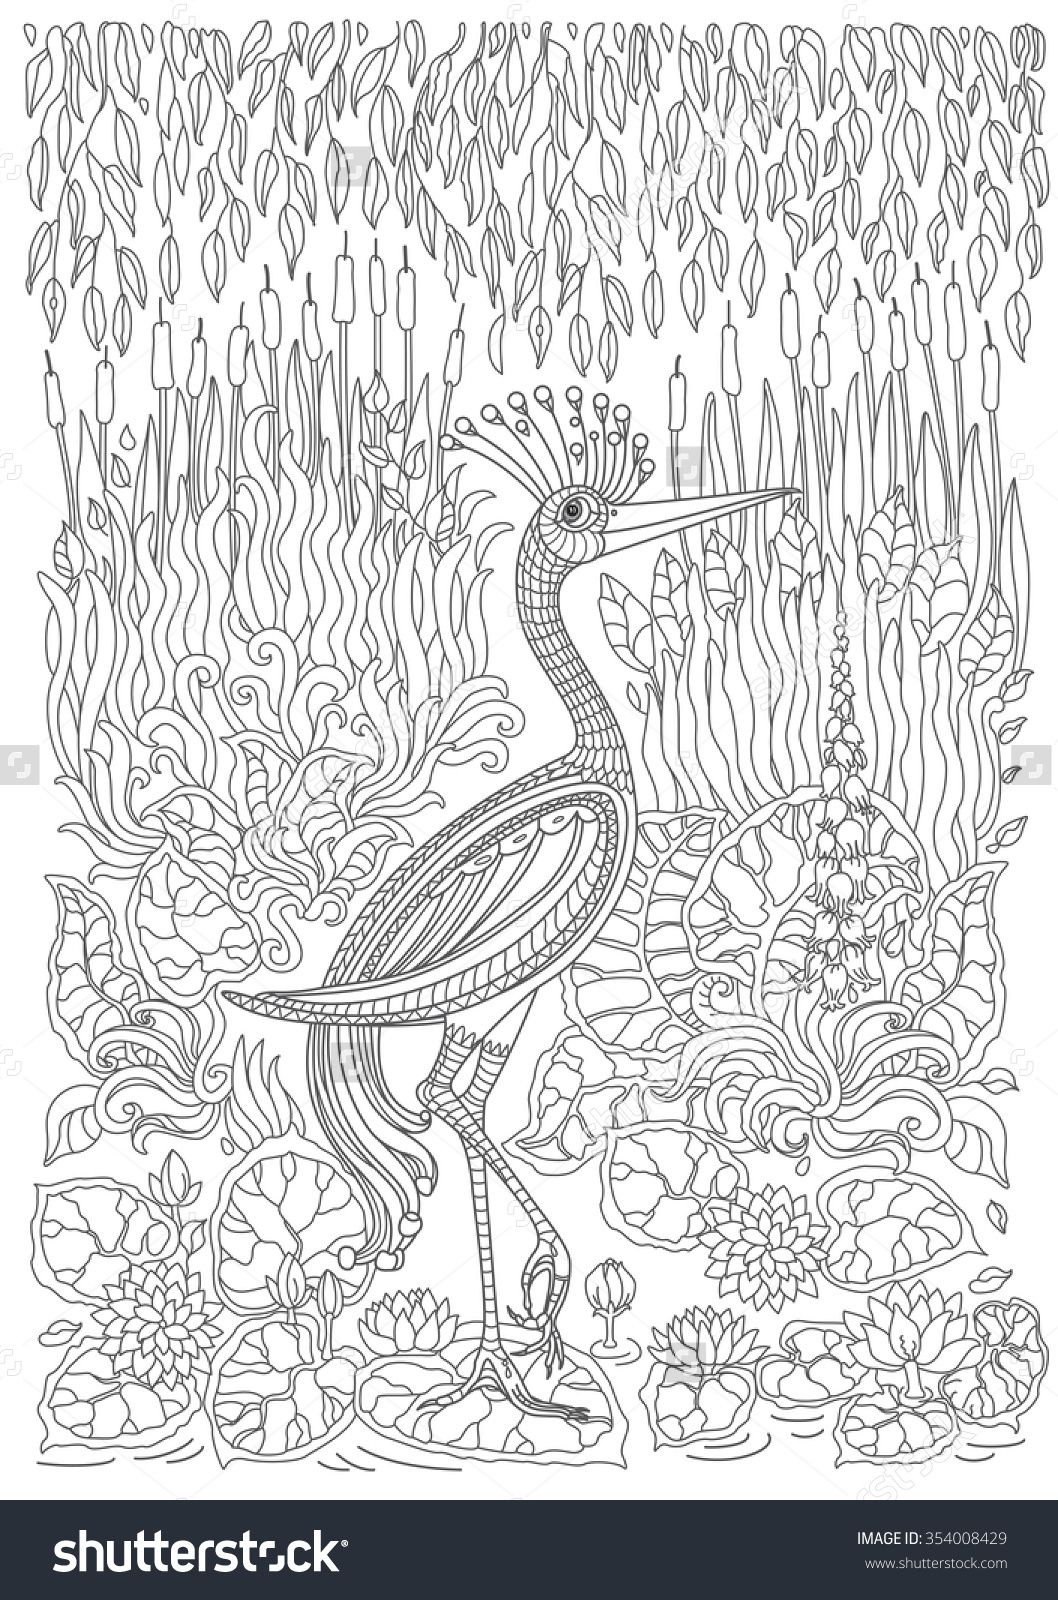 Stock Vector Exotic Bird Fantastic Flowers Branches Leaves Coloring Pages StressColorAnimalsBooks